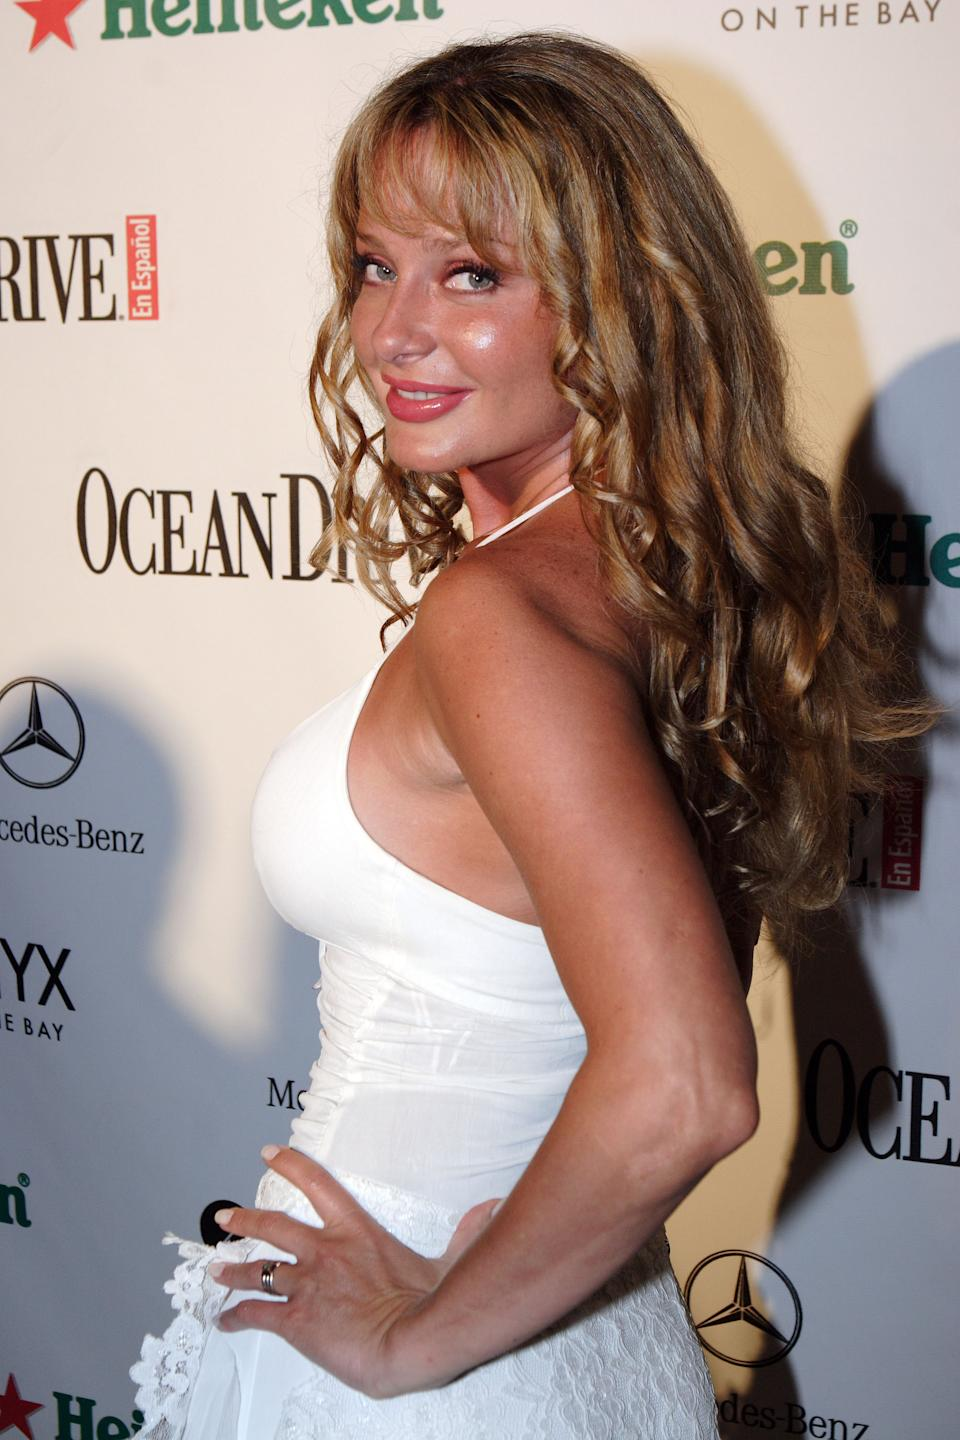 MIAMI - MAY 15:  Actress Joana Benedek poses at Ocean Drive en Espanol's 4th Anniversary Party on May 15, 2005 in Miami, Florida.  (Photo by Alberto Tamargo/Getty Images)